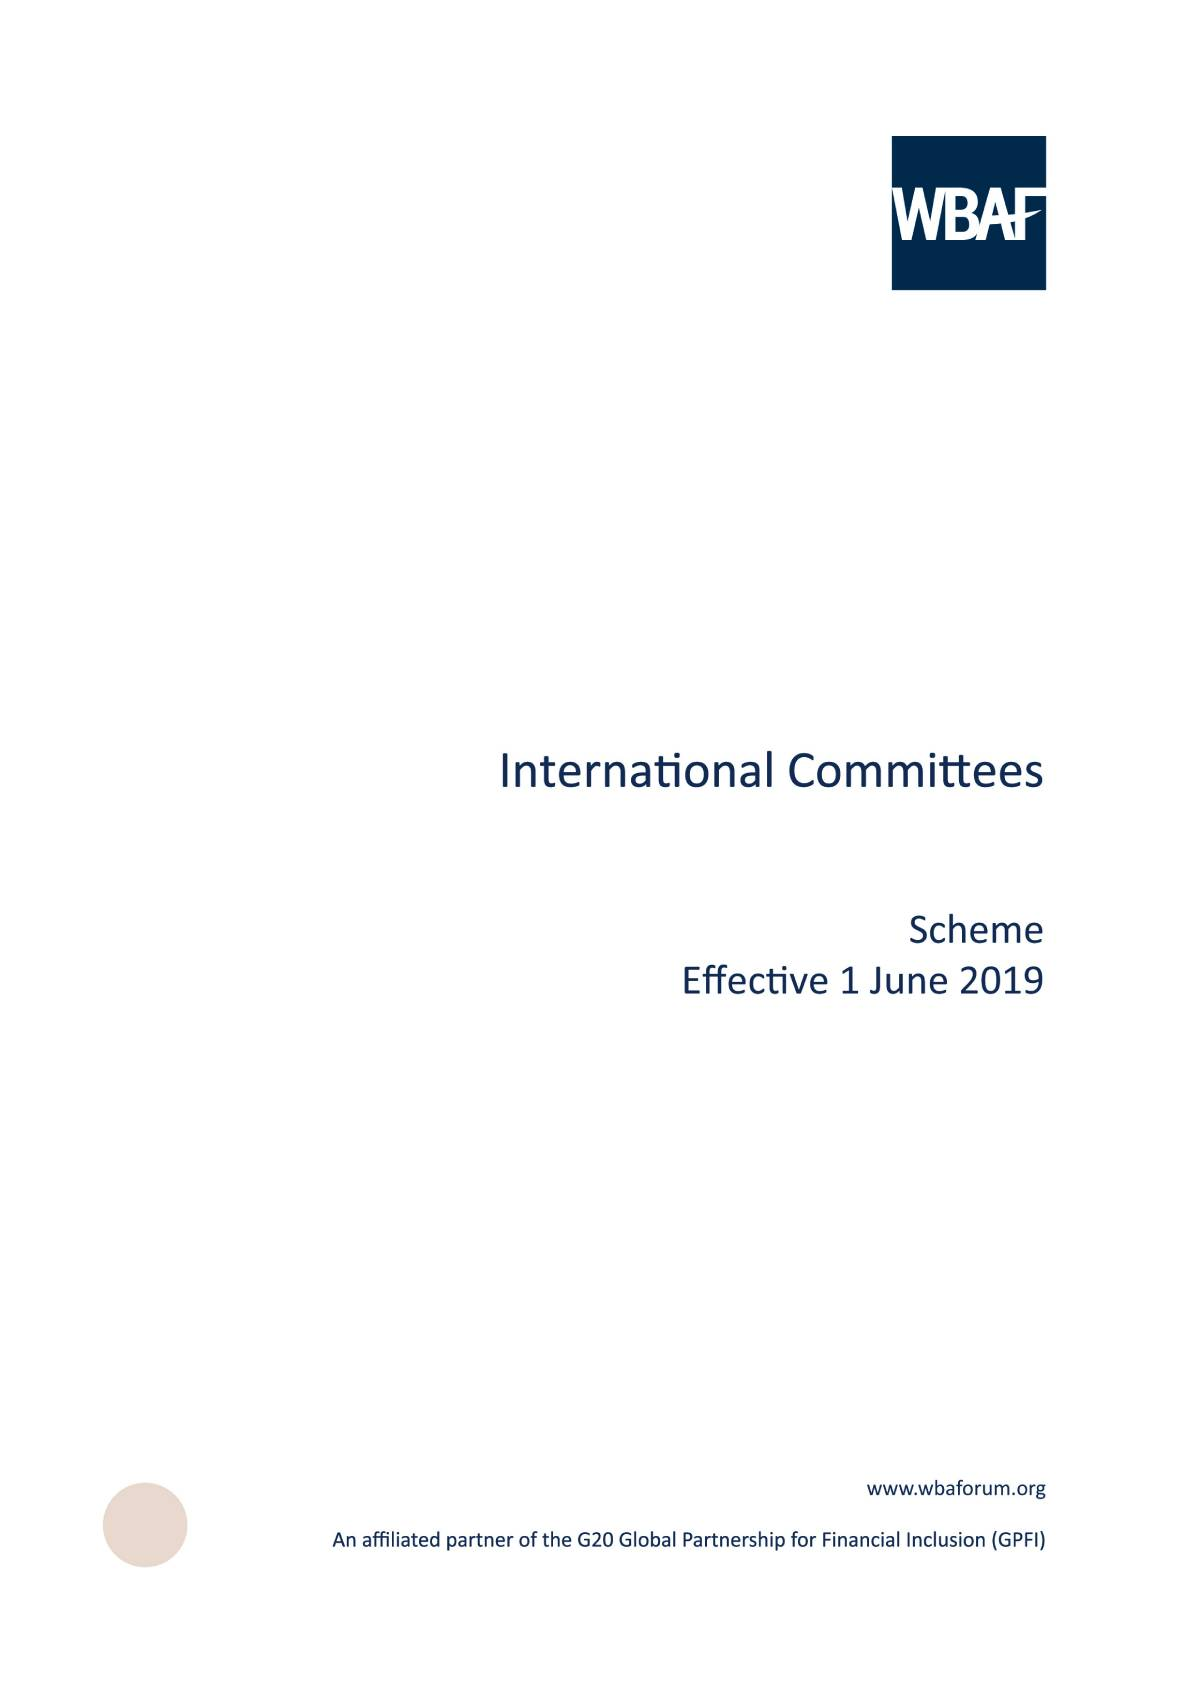 International Committees - Scheme